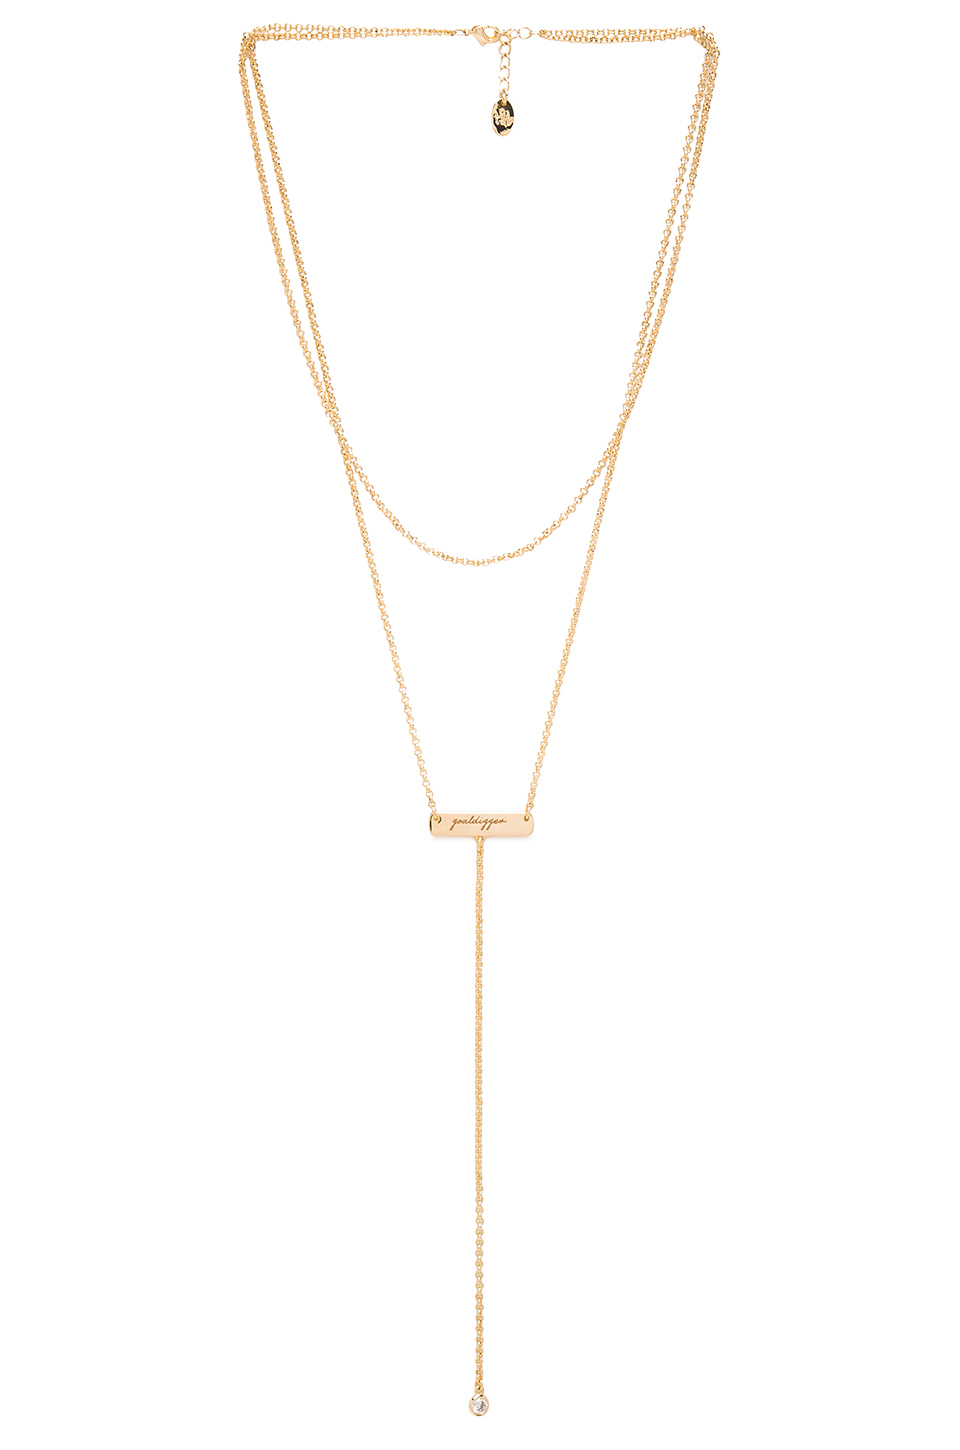 Goal Digger Necklace - $98